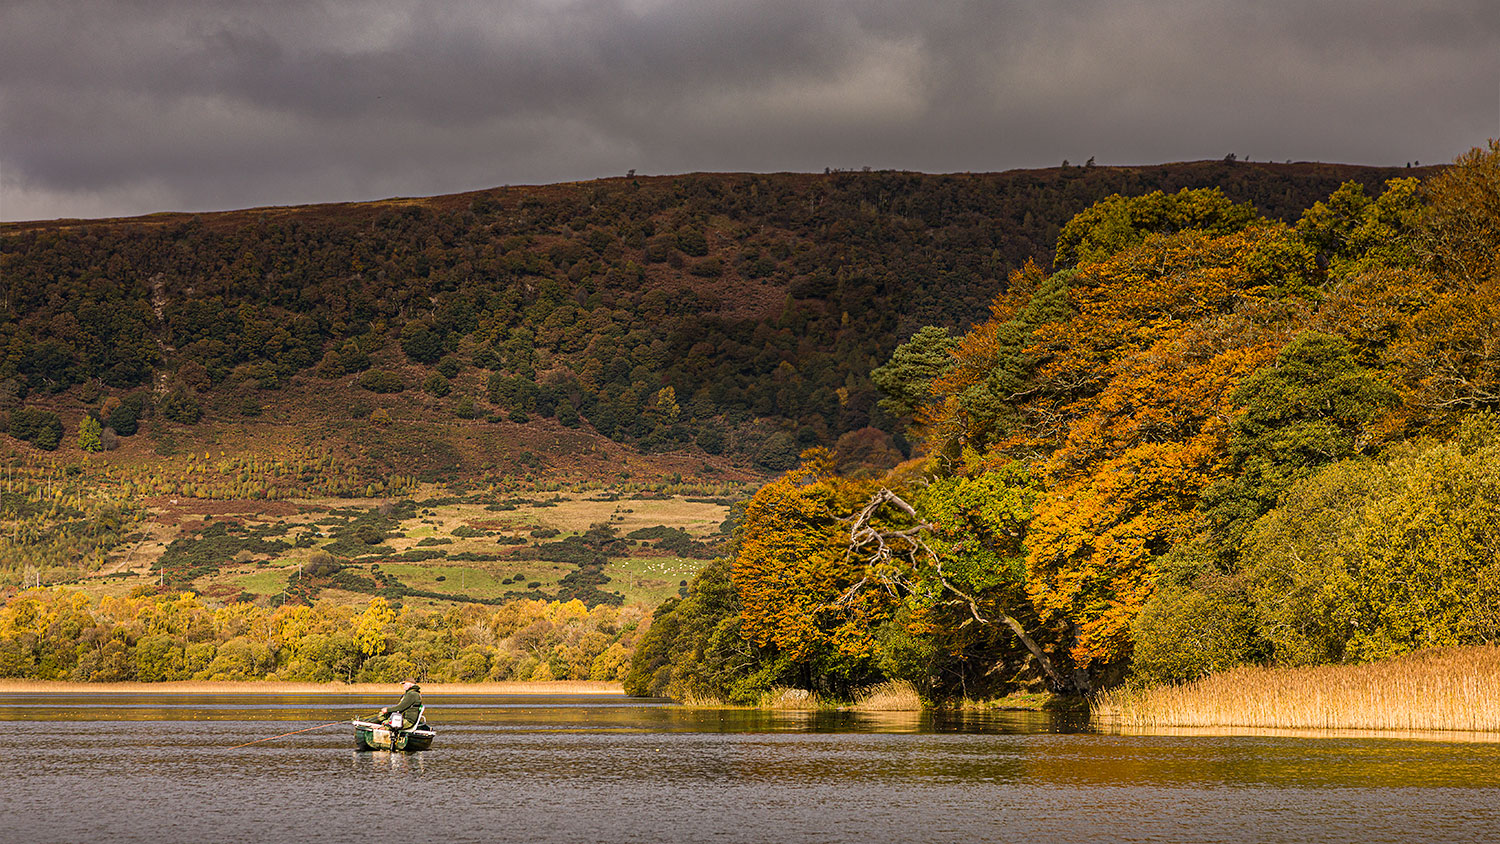 Menteith16Oct20_4488-HDR.jpg